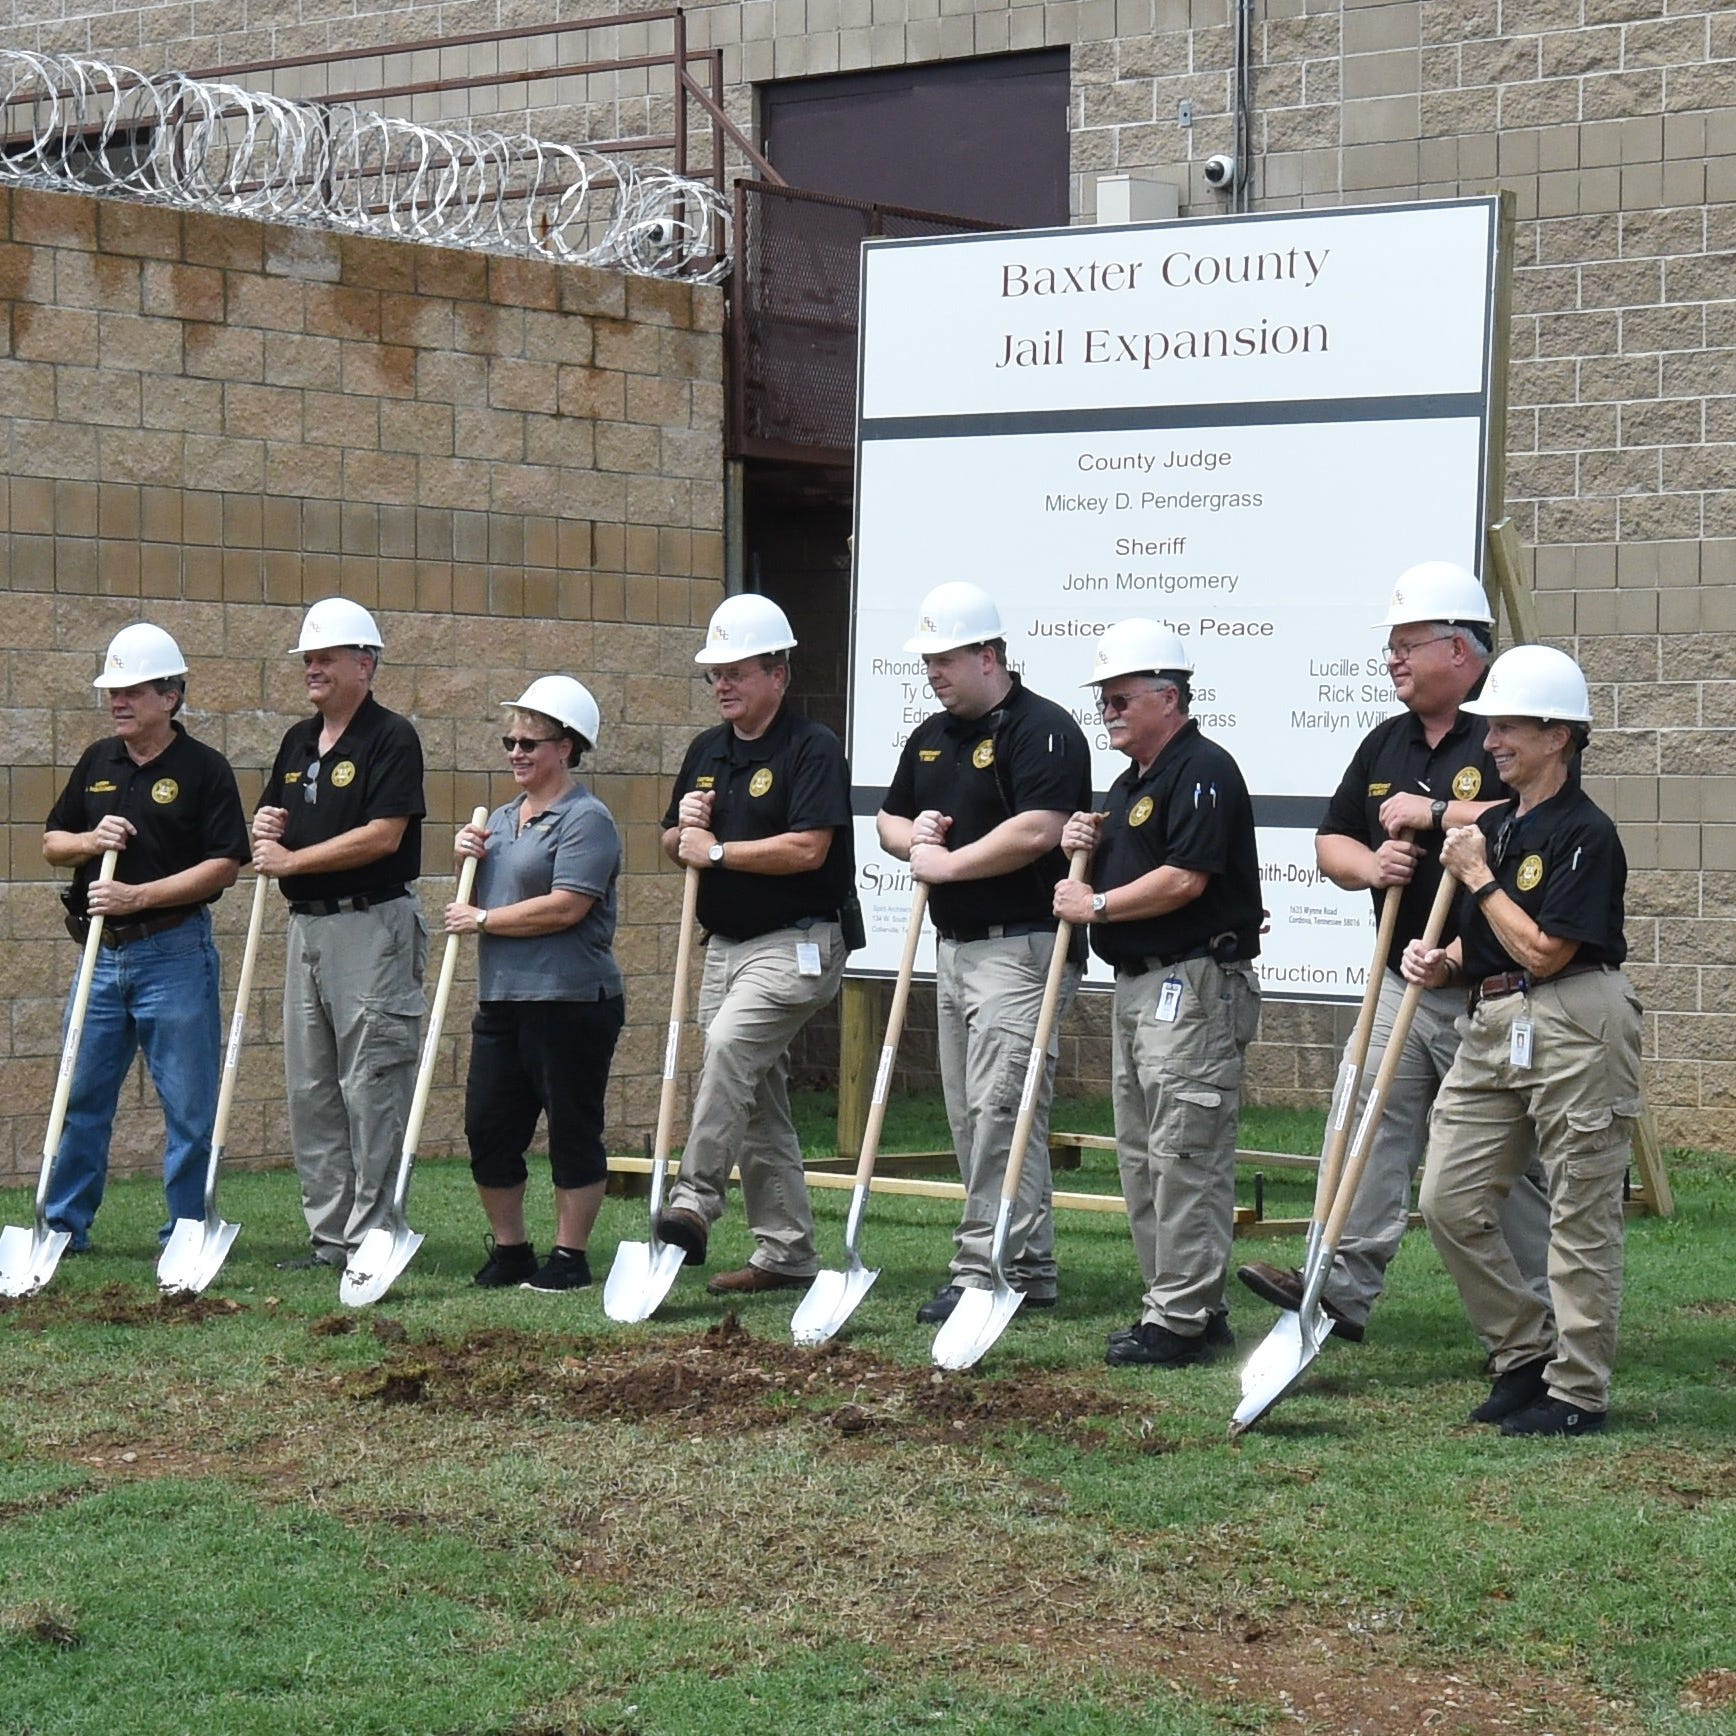 Groundbreaking kicks off jail expansion